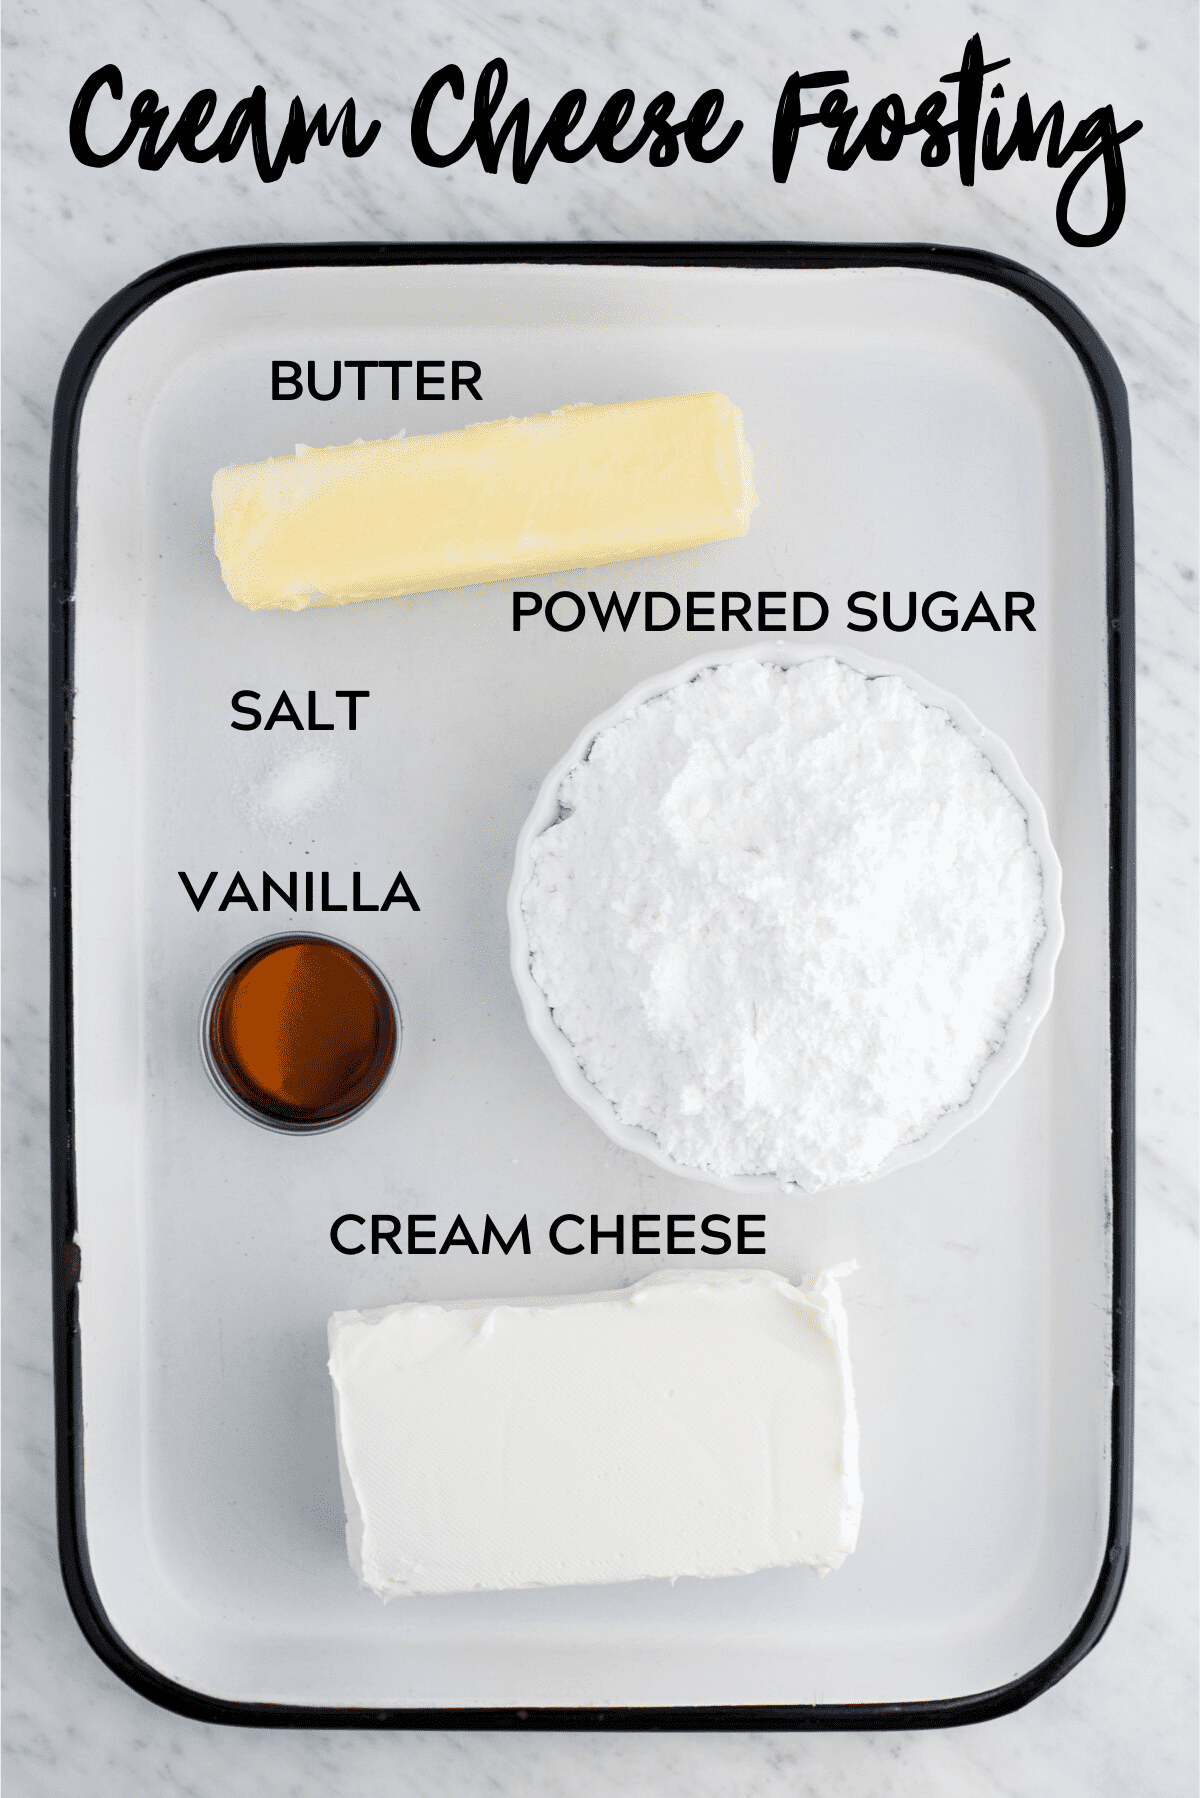 ingredients to make cream cheese frosting on white metal tray with text overlay